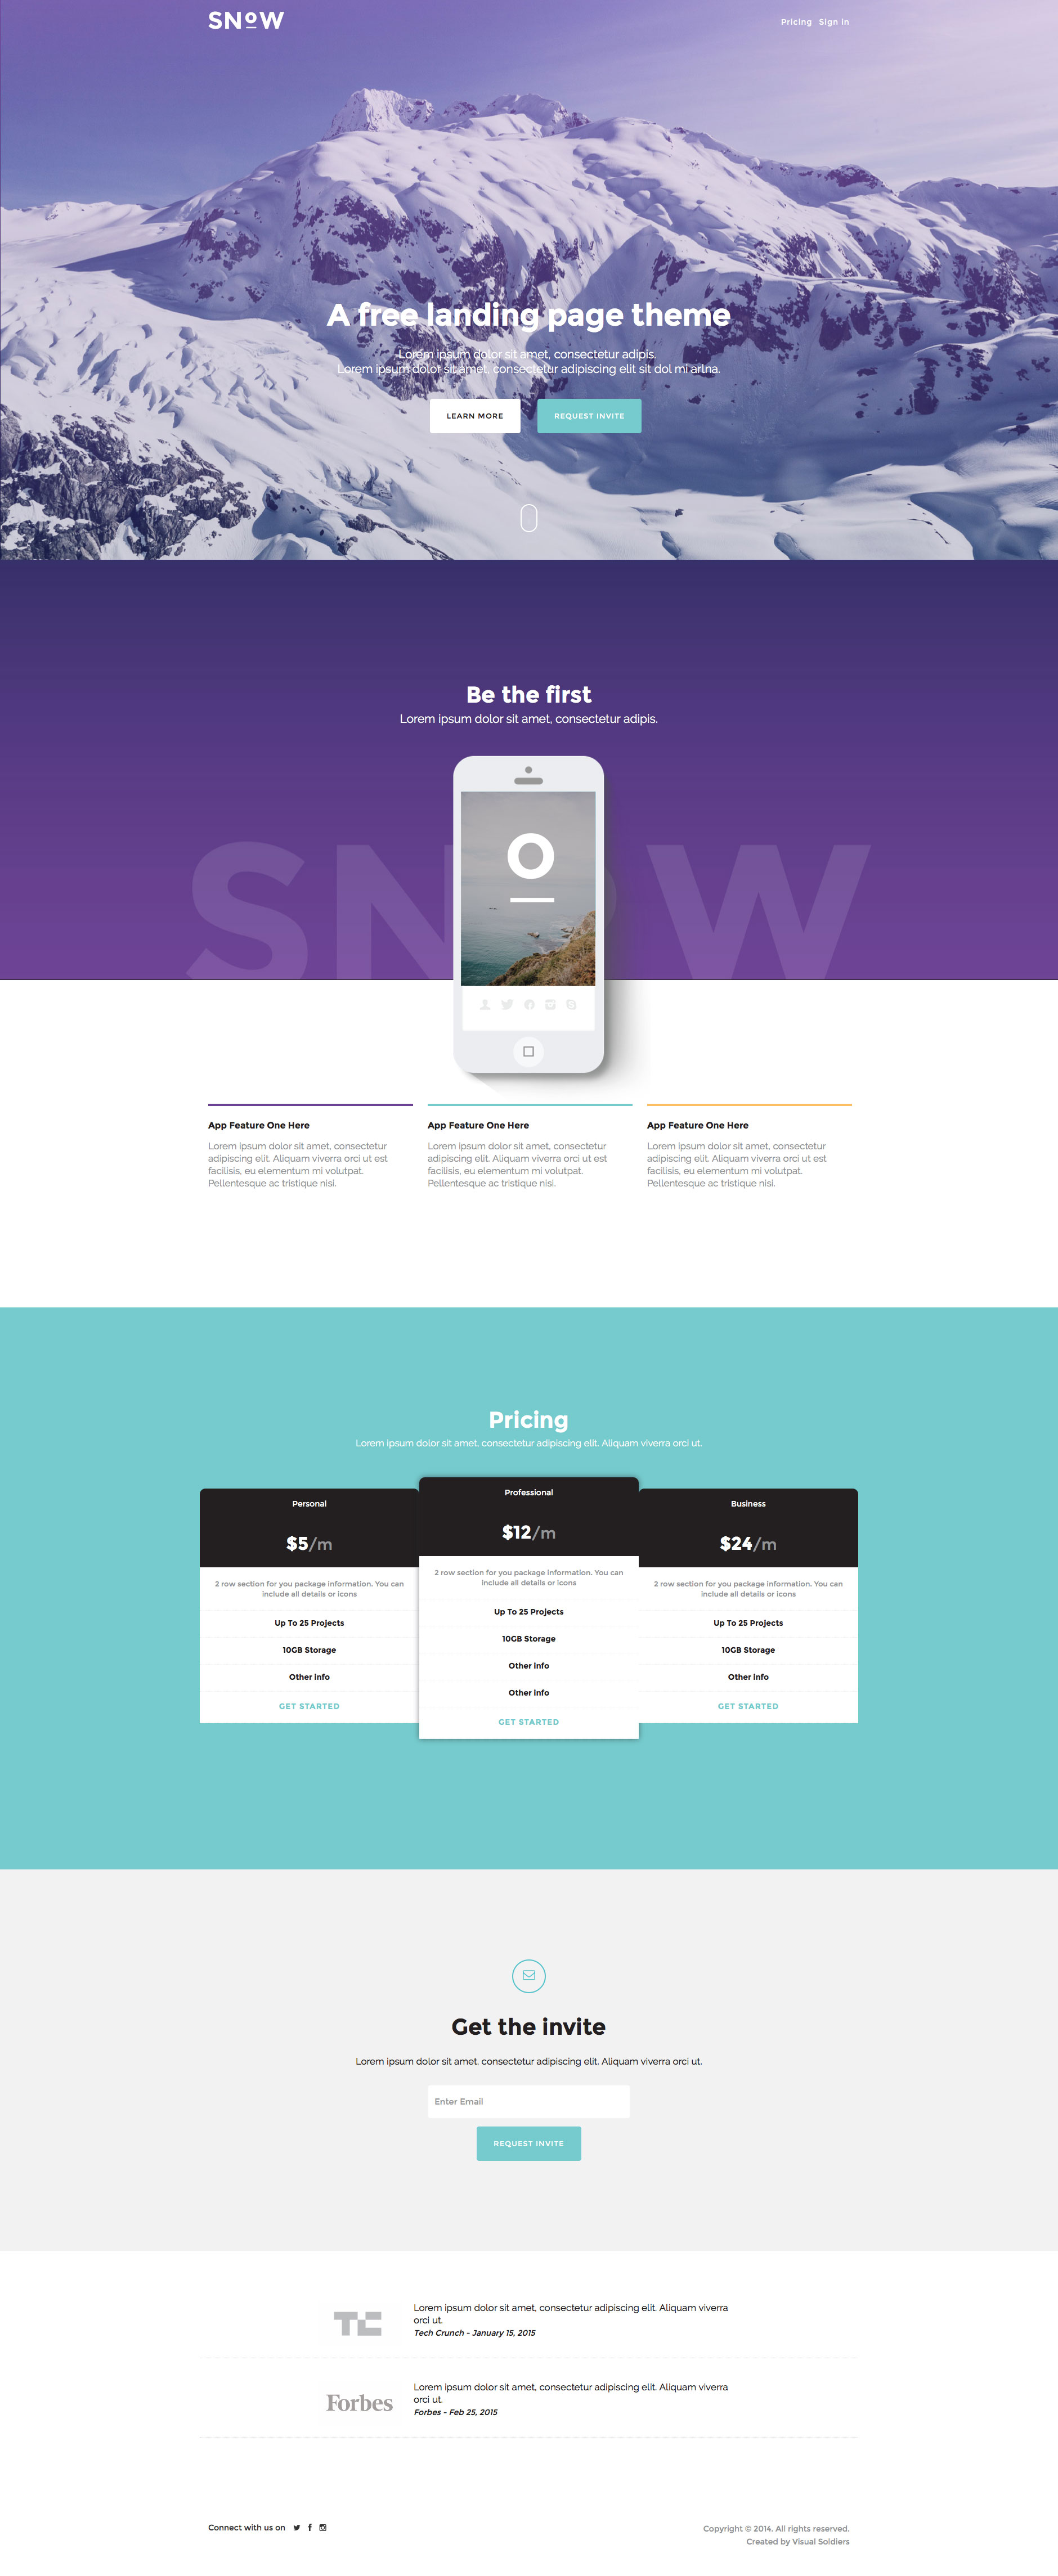 Snow Free Responsive HTML Bootstrap Landing Page Template - One page website template html5 responsive free download